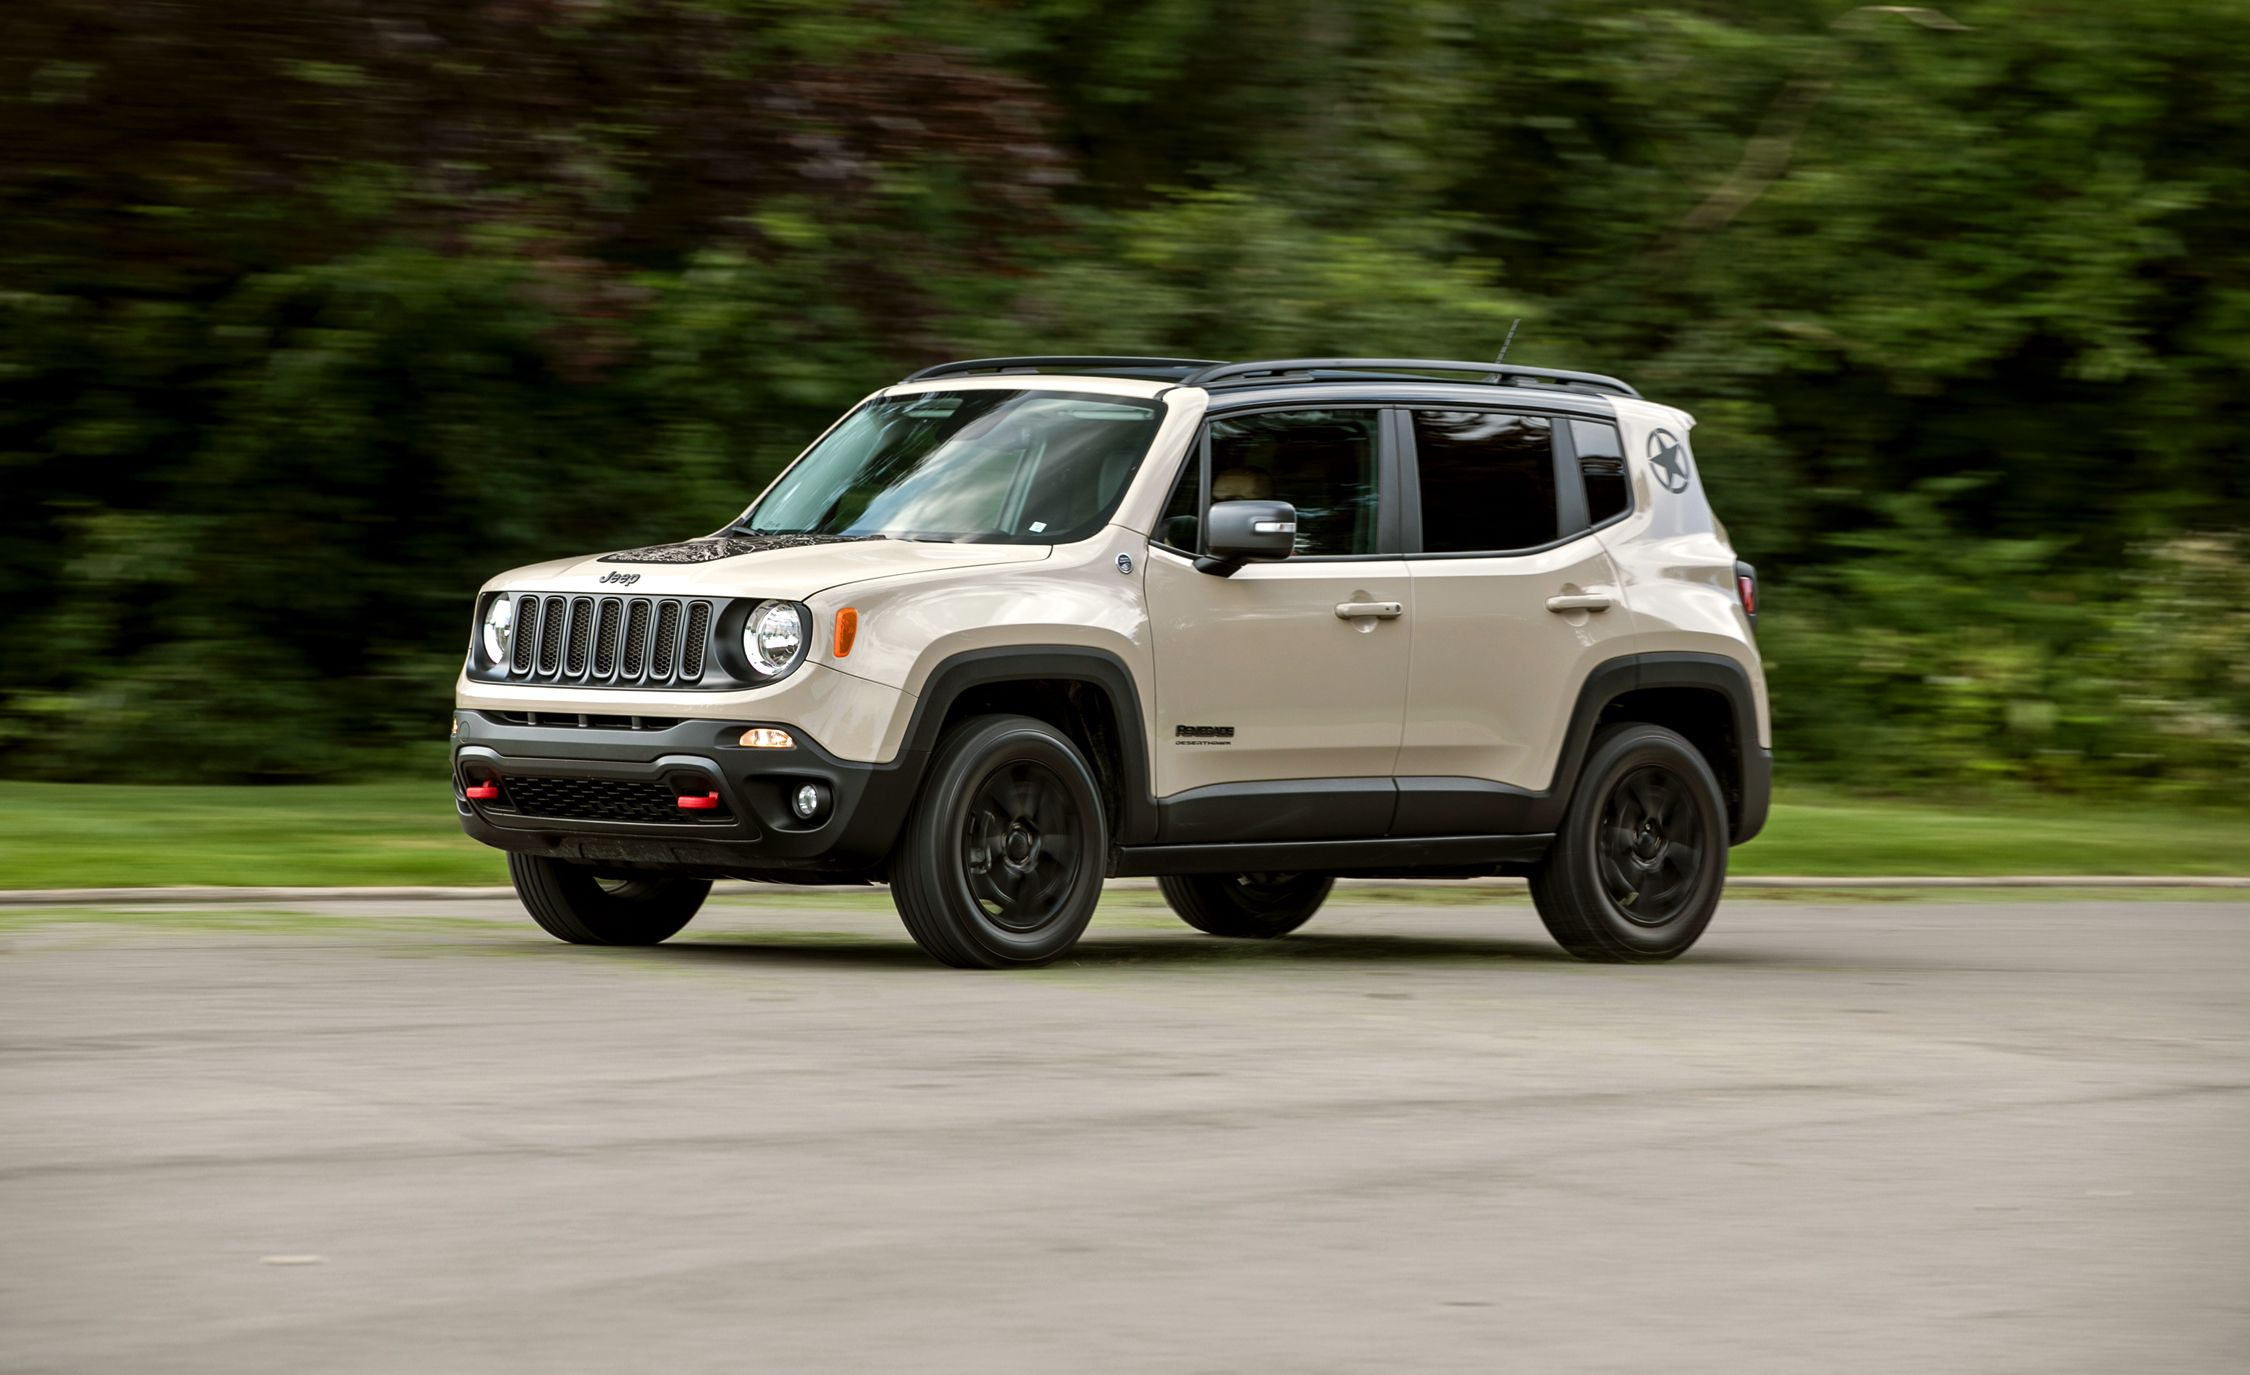 jeep renegade review 2017 | Сars blog